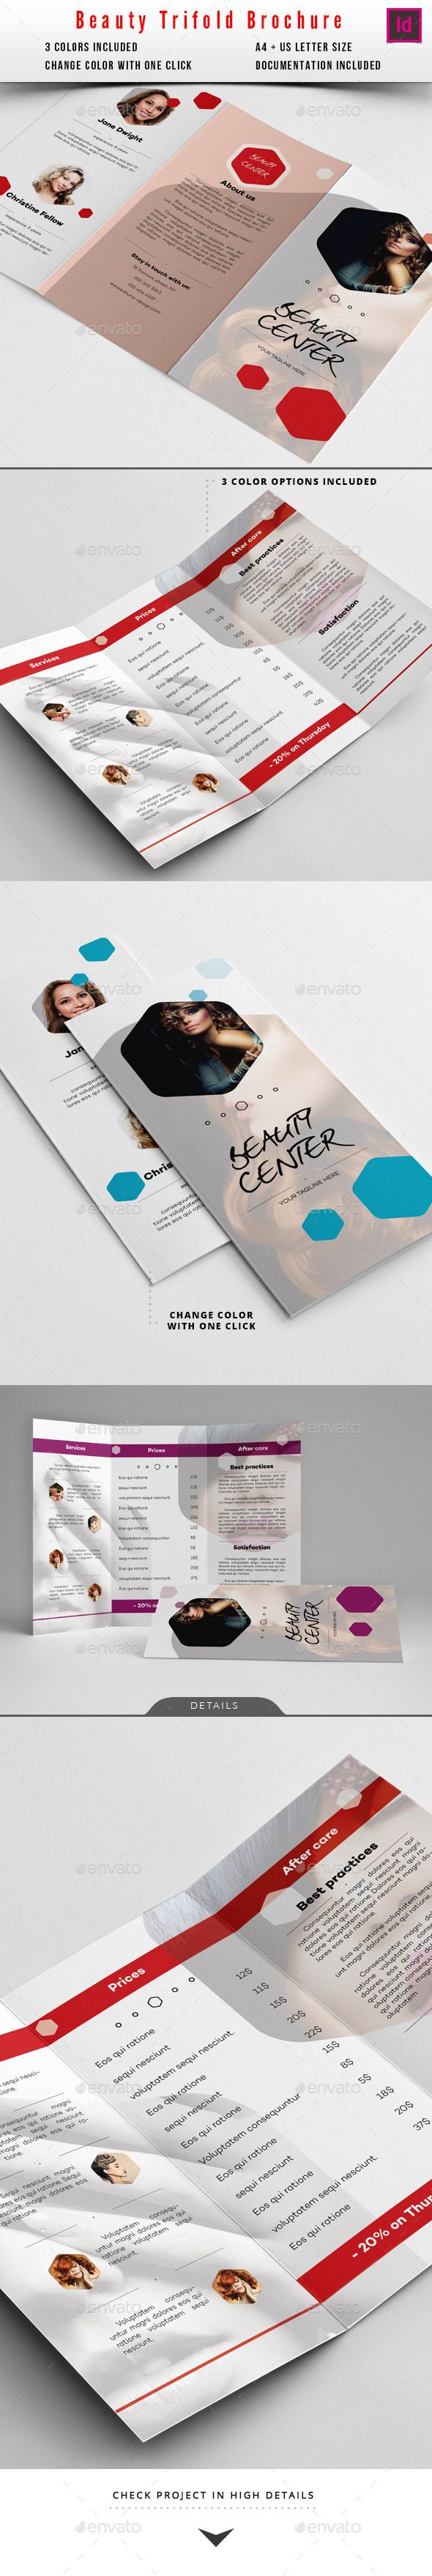 Beauty Salon Brochure  Indesign Indd Multicolor Clean